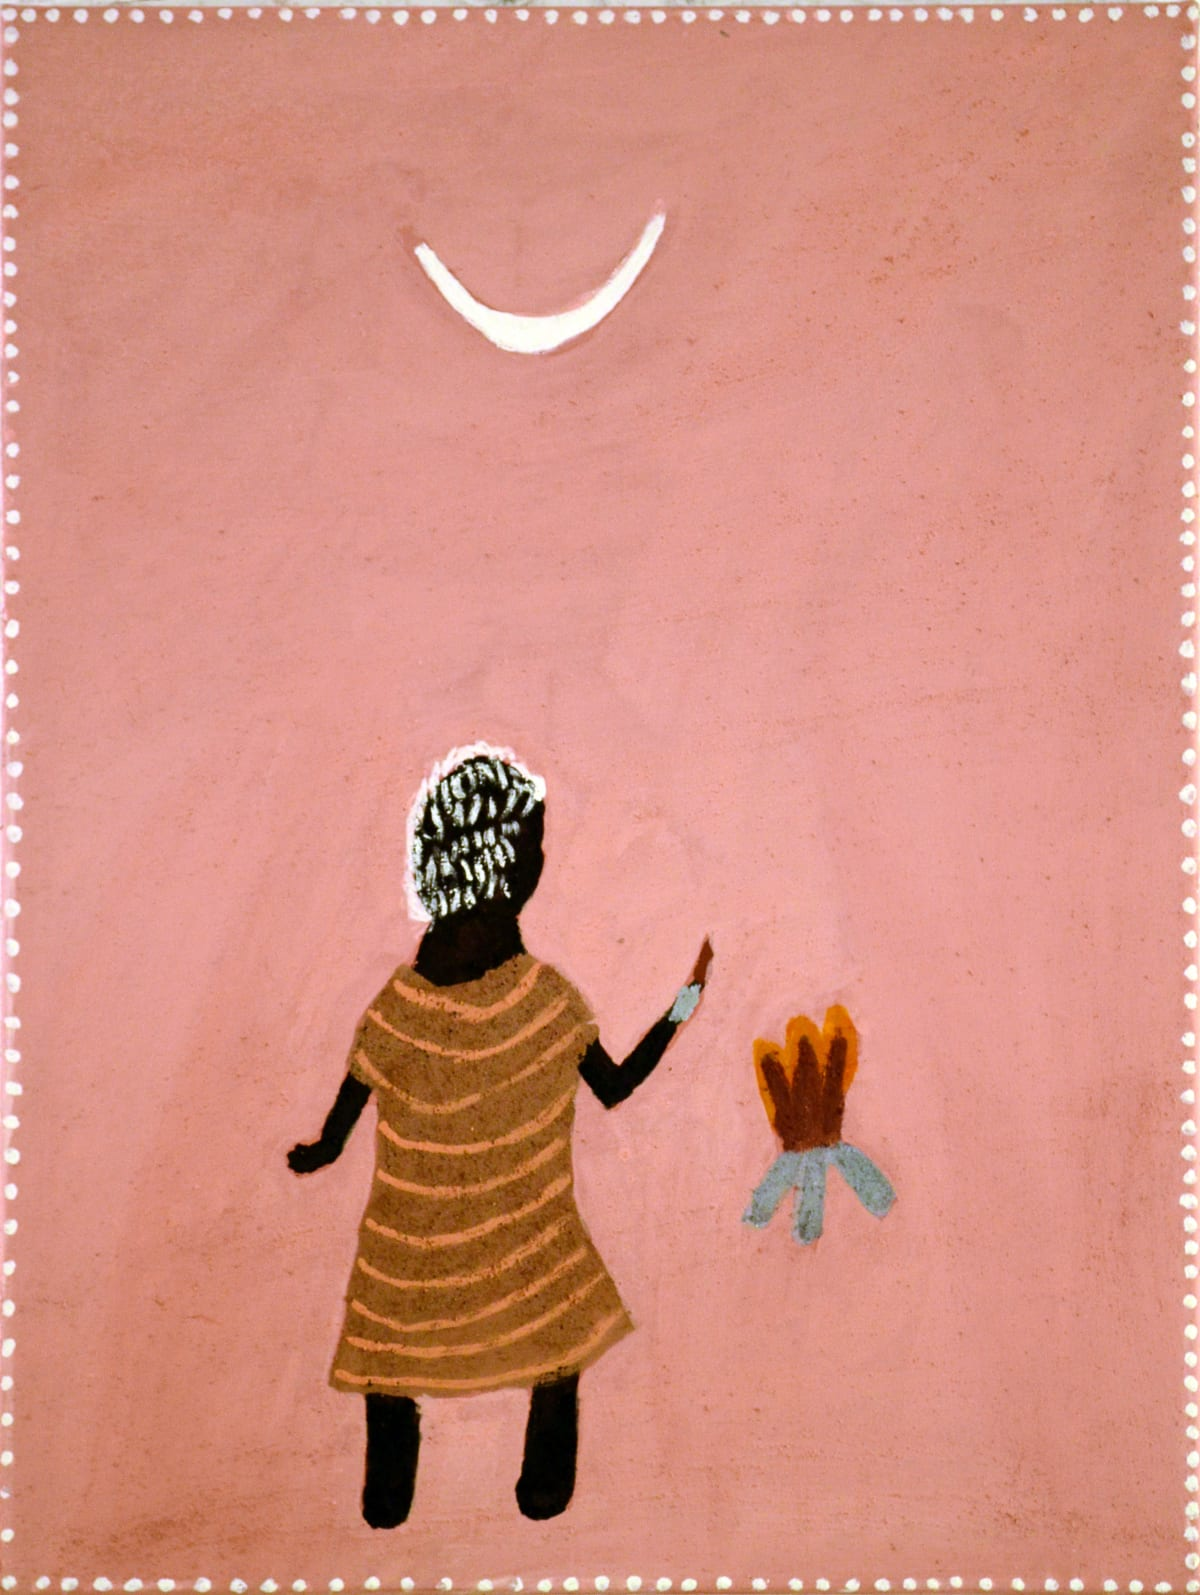 Betty Carrington Burning of the moon natural ochre and pigments on canvas 80 x 60 cm